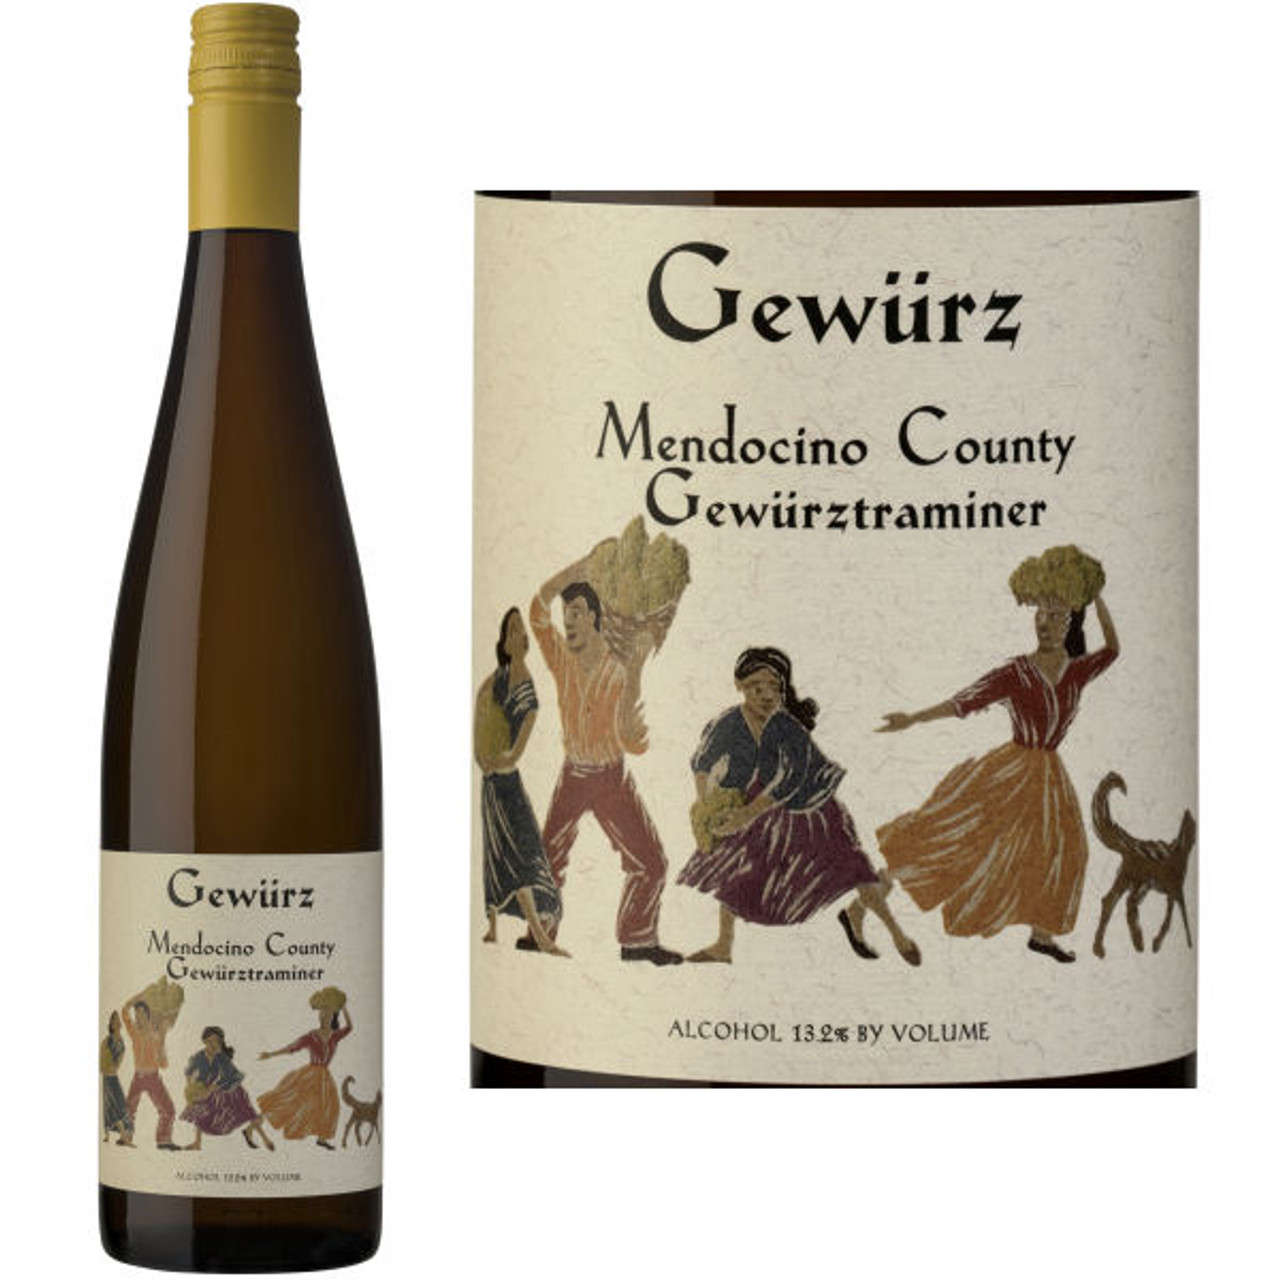 Alexander Valley Vineyards Mendocino Gewurztraminer